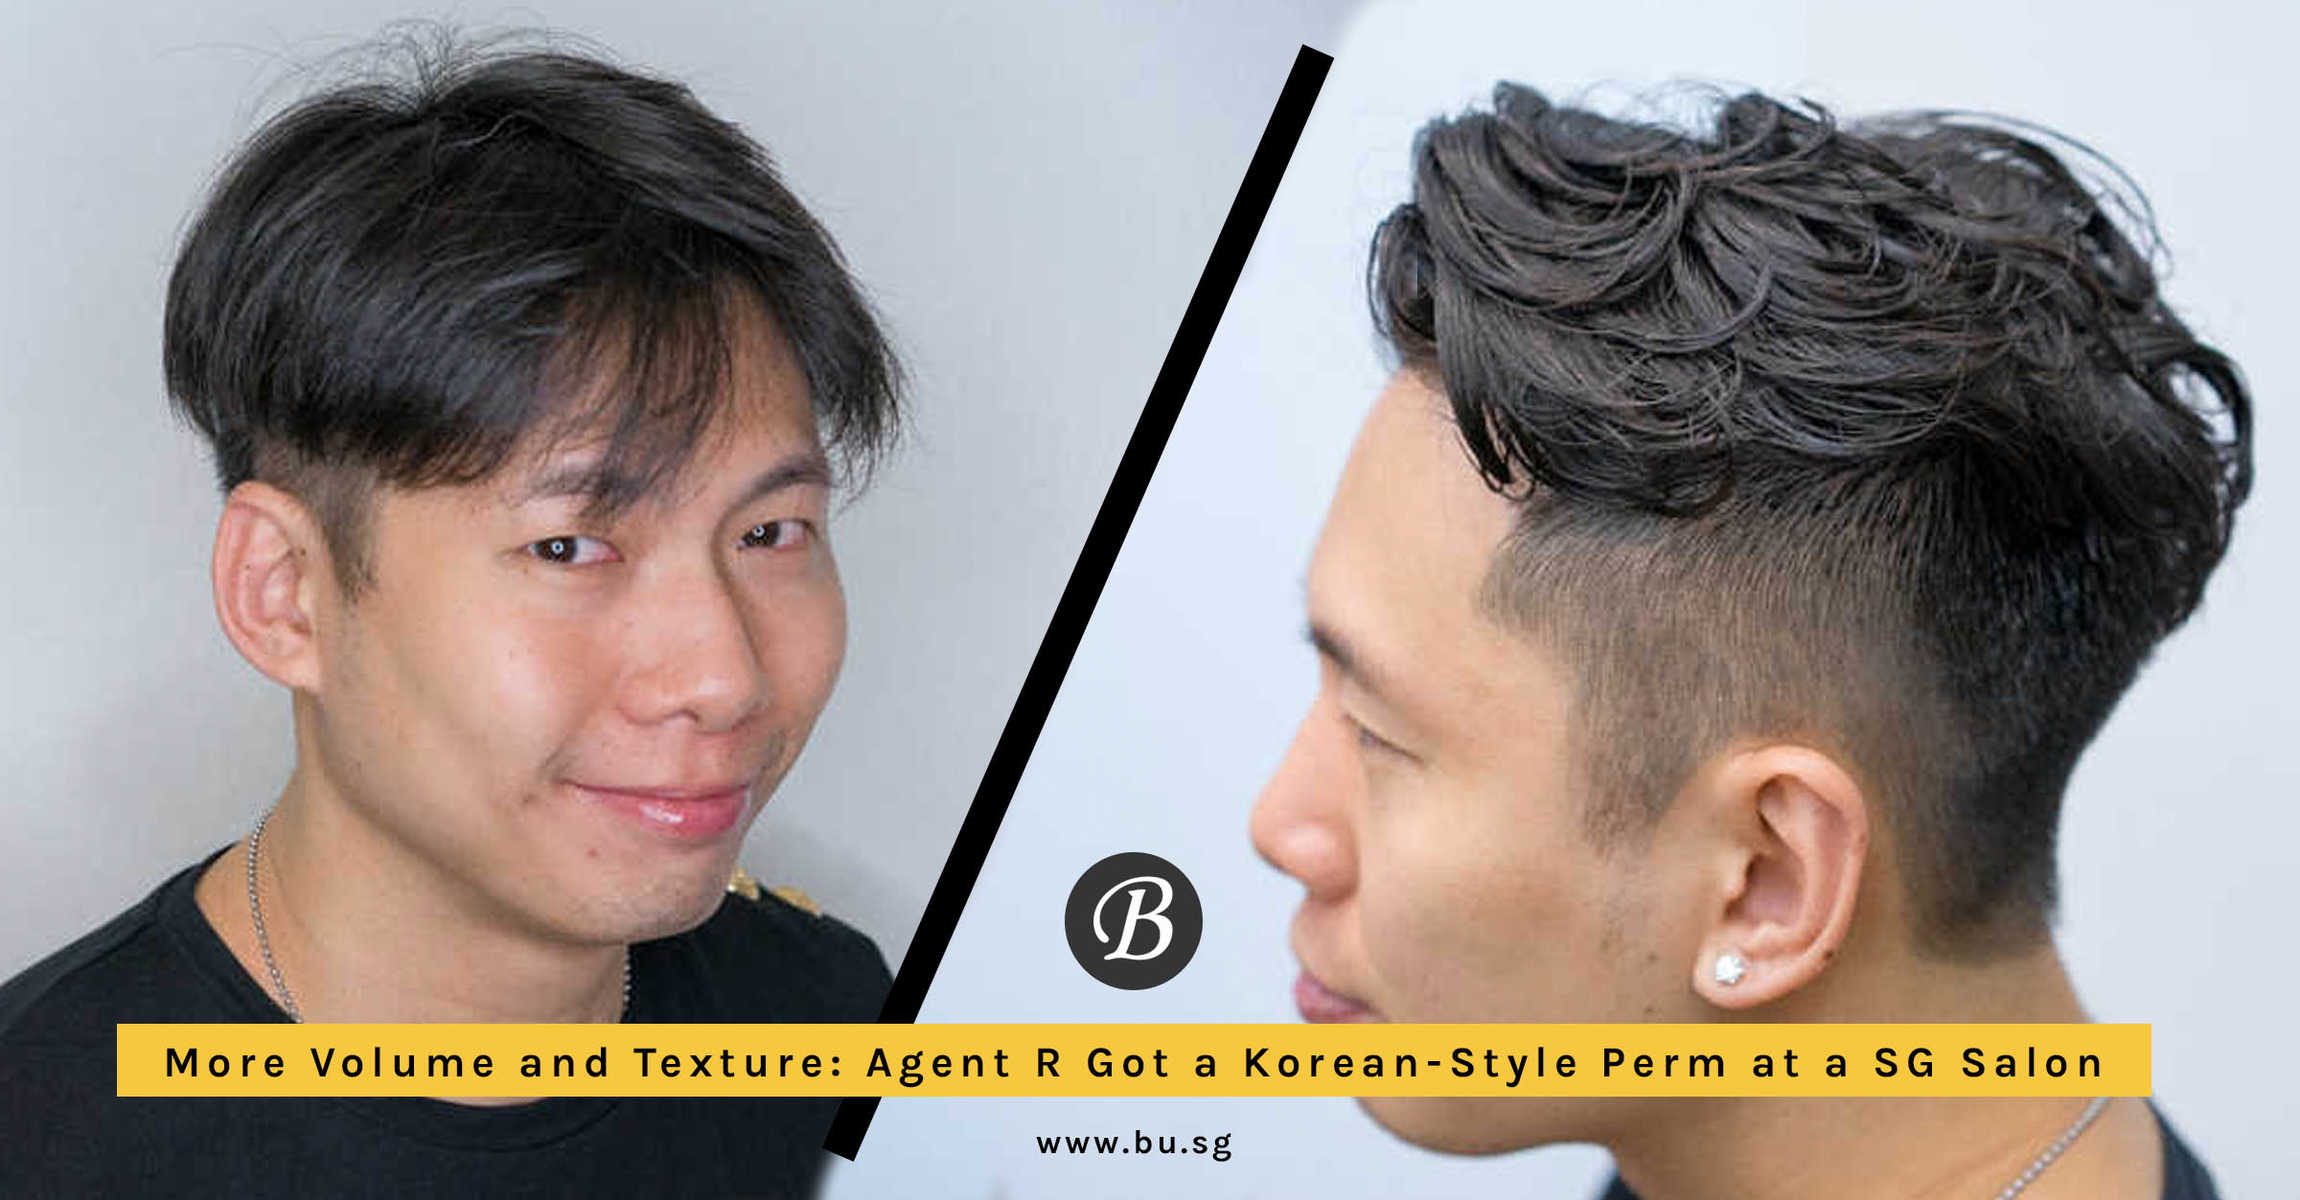 More Texture, More Volume: Agent R got a Volume Korean-Style Perm at Act Point Salon